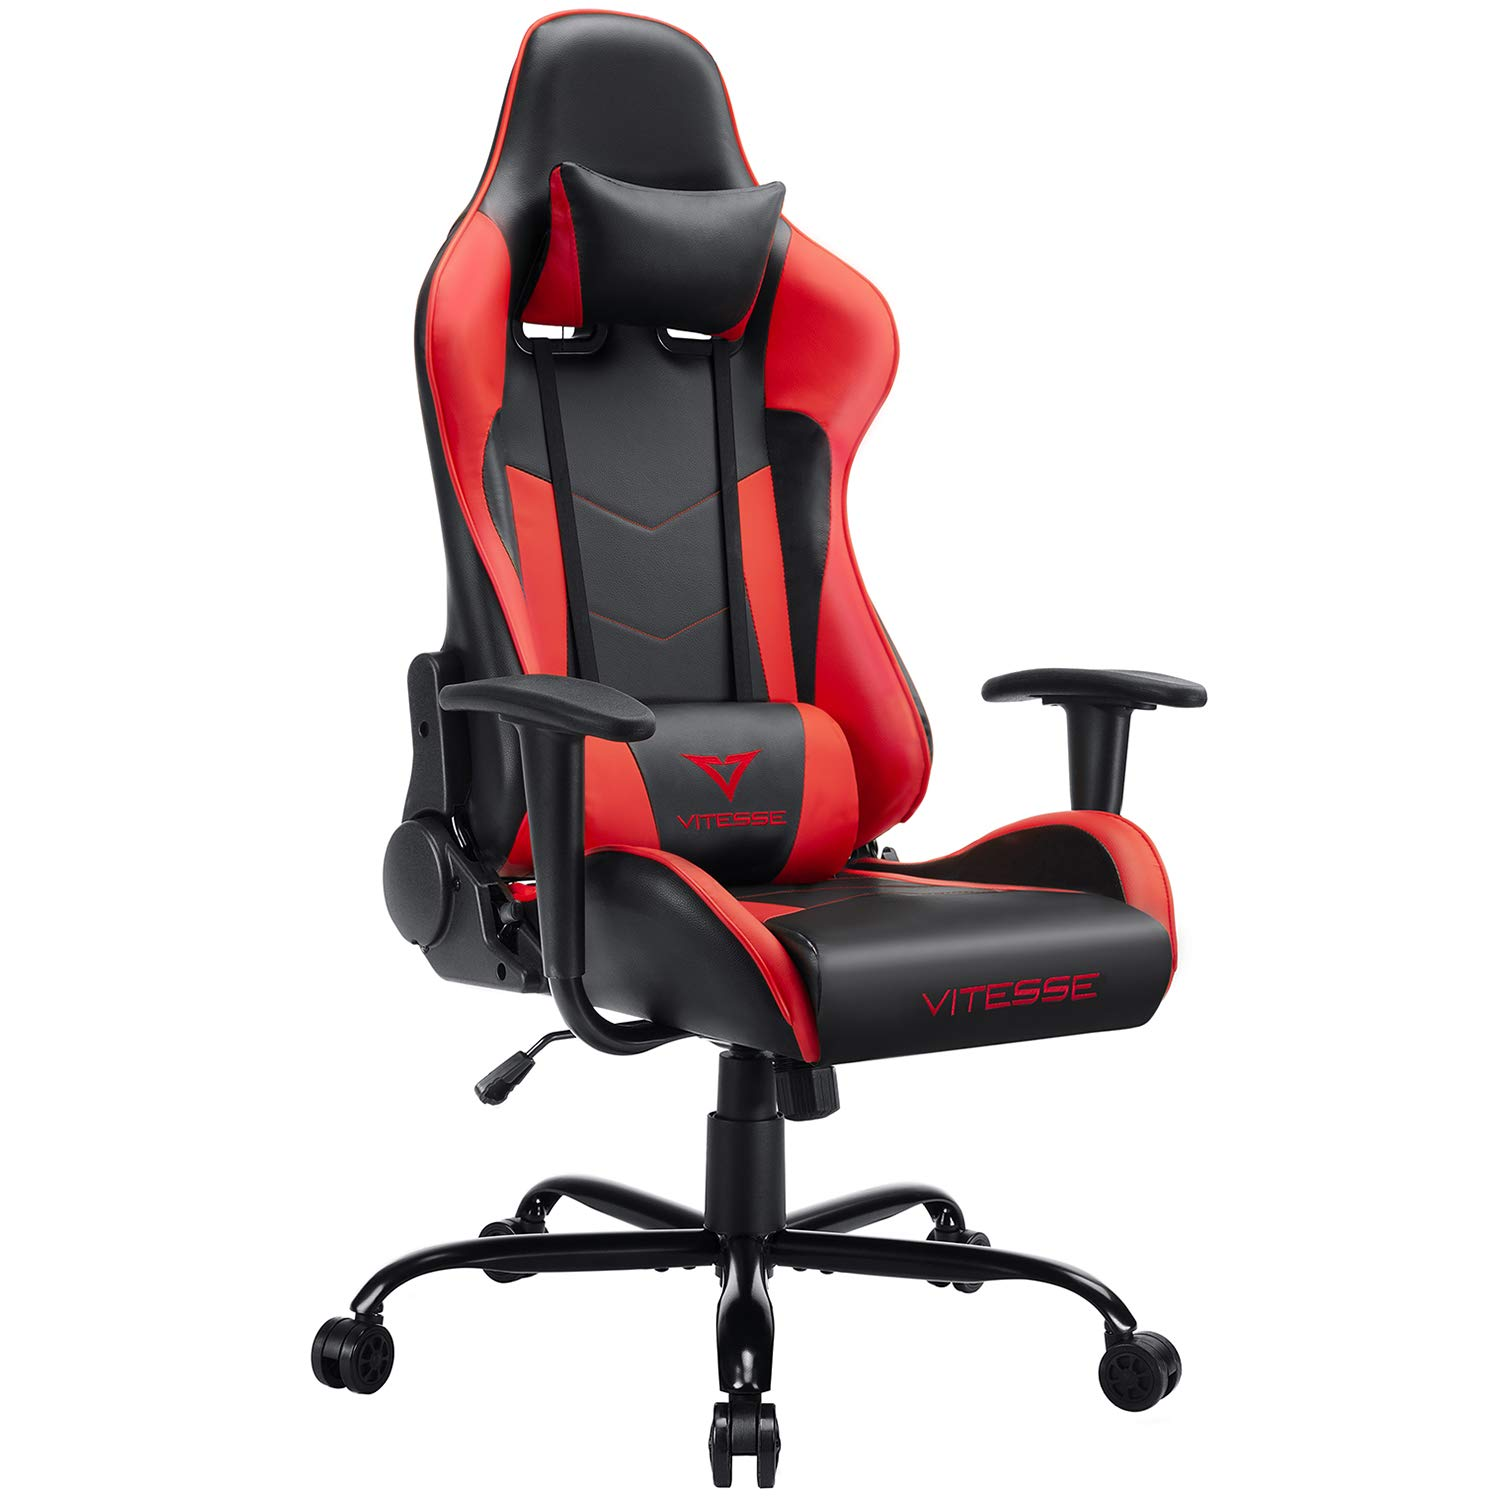 Vitesse Gaming Chair Sillas Gaming Video Gaming Chair Ergonomic Computer Desk Chair High Back Racing Style Comfortable Chair Swivel Executive Leather Chair with Lumbar Support and Headrest Red